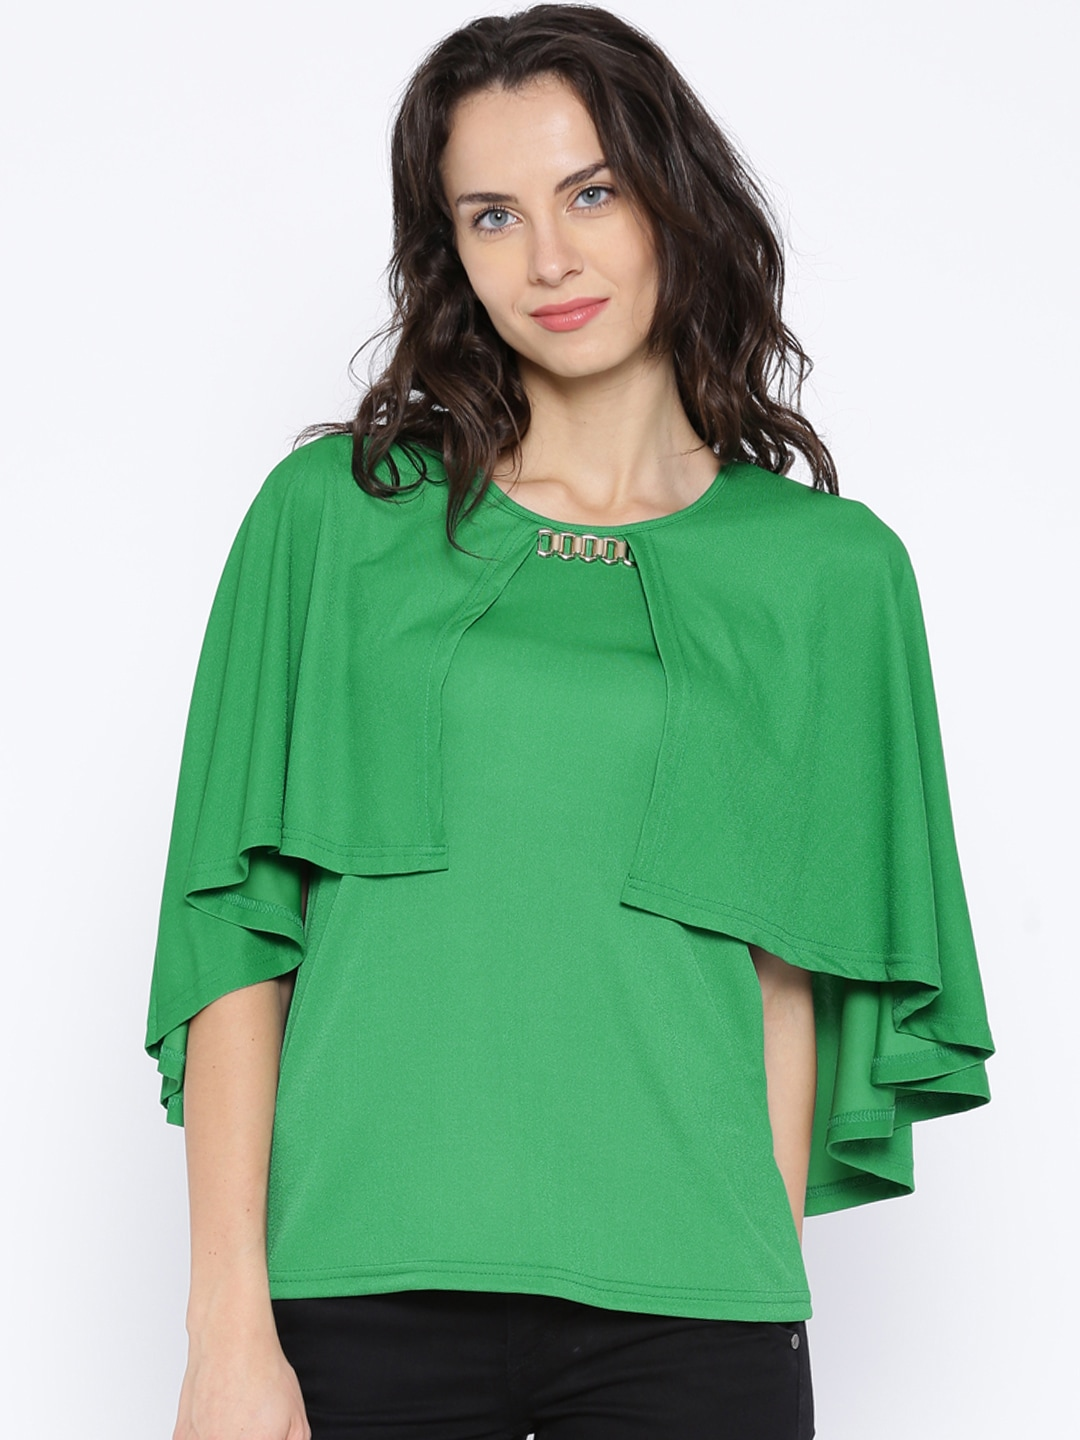 AND by Anita Dongre Green Cape Top